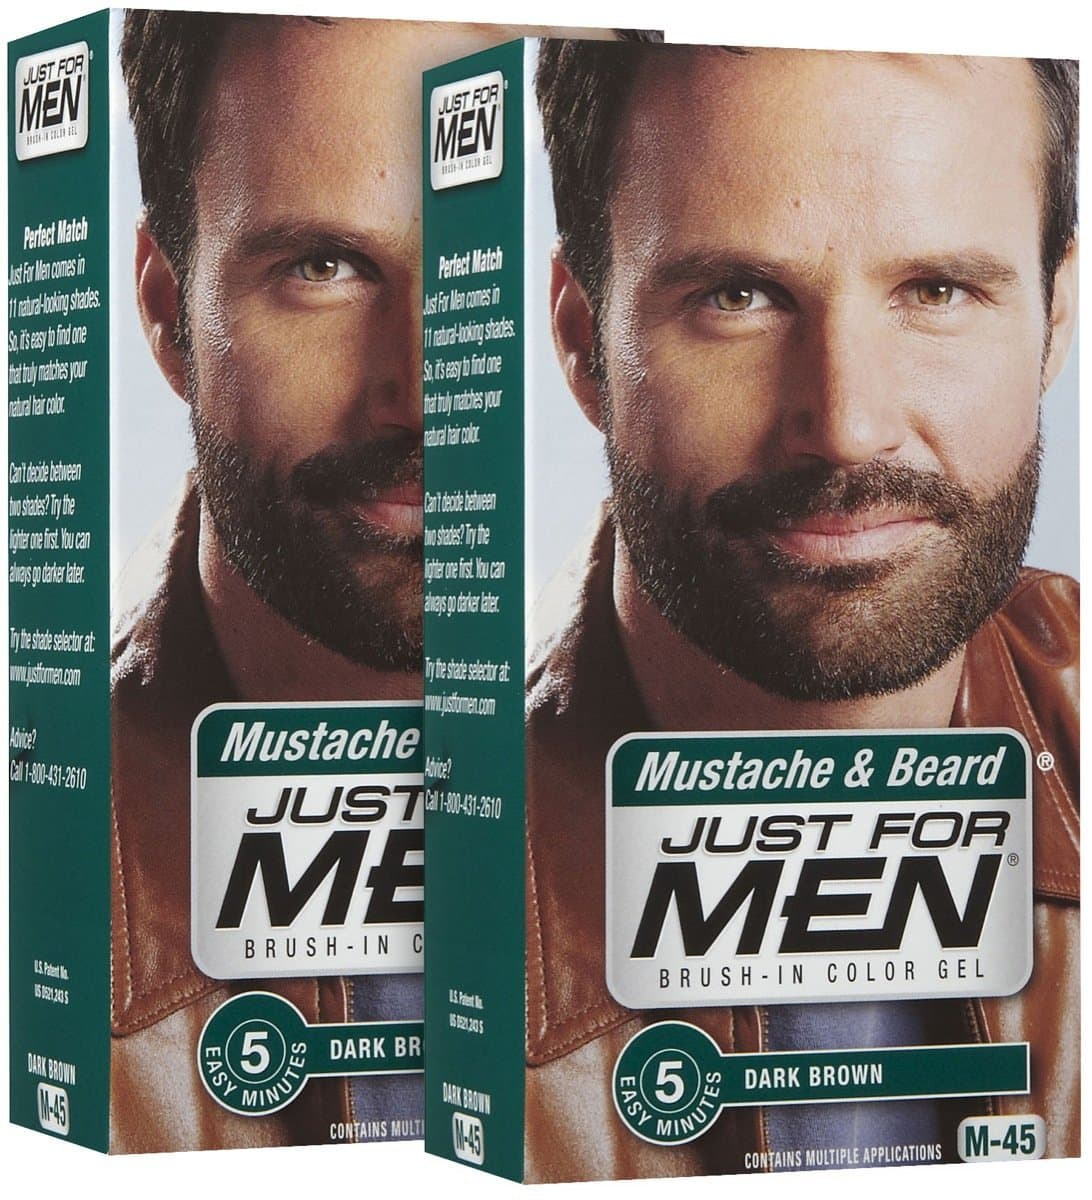 just for men beard and mustache instructions photo - 1